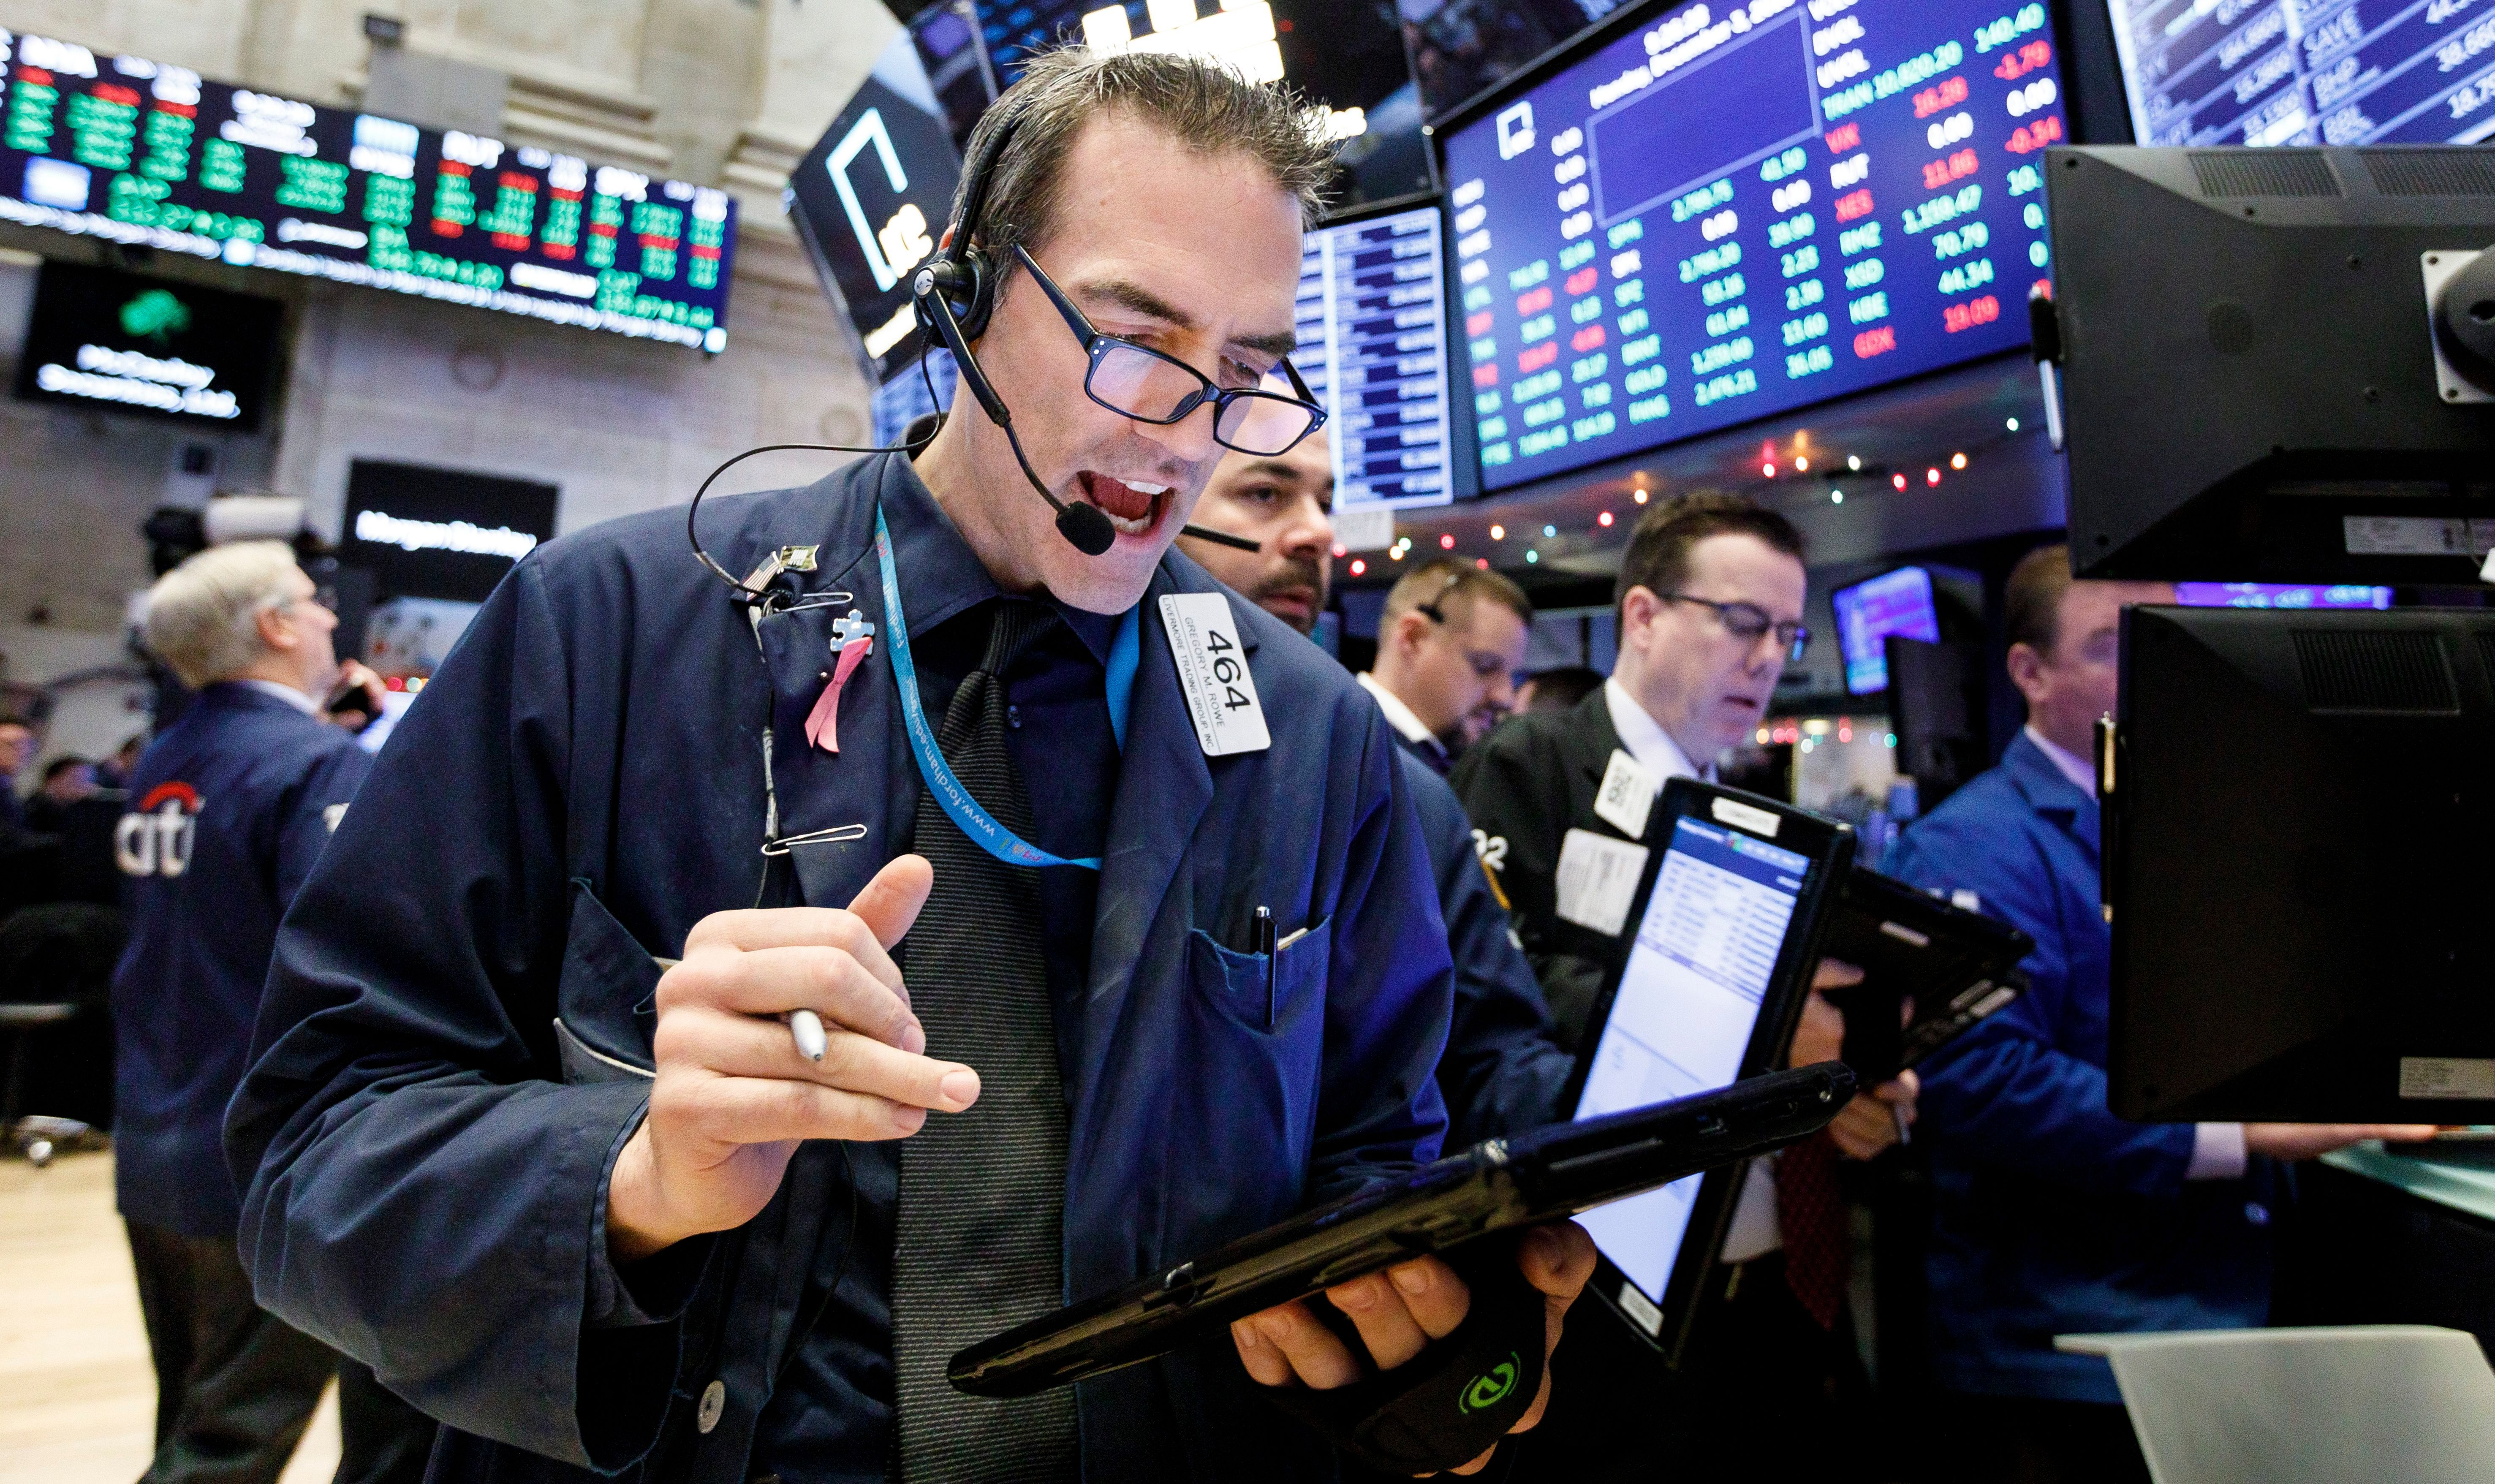 Traders work on the floor of the New York Stock Exchange in New York, New York, USA, 03 December 2018. Global markets were sharply higher today following reports that the United States and China have made progress in their trade dispute.New York Stock Exchange, USA - 03 Dec 2018